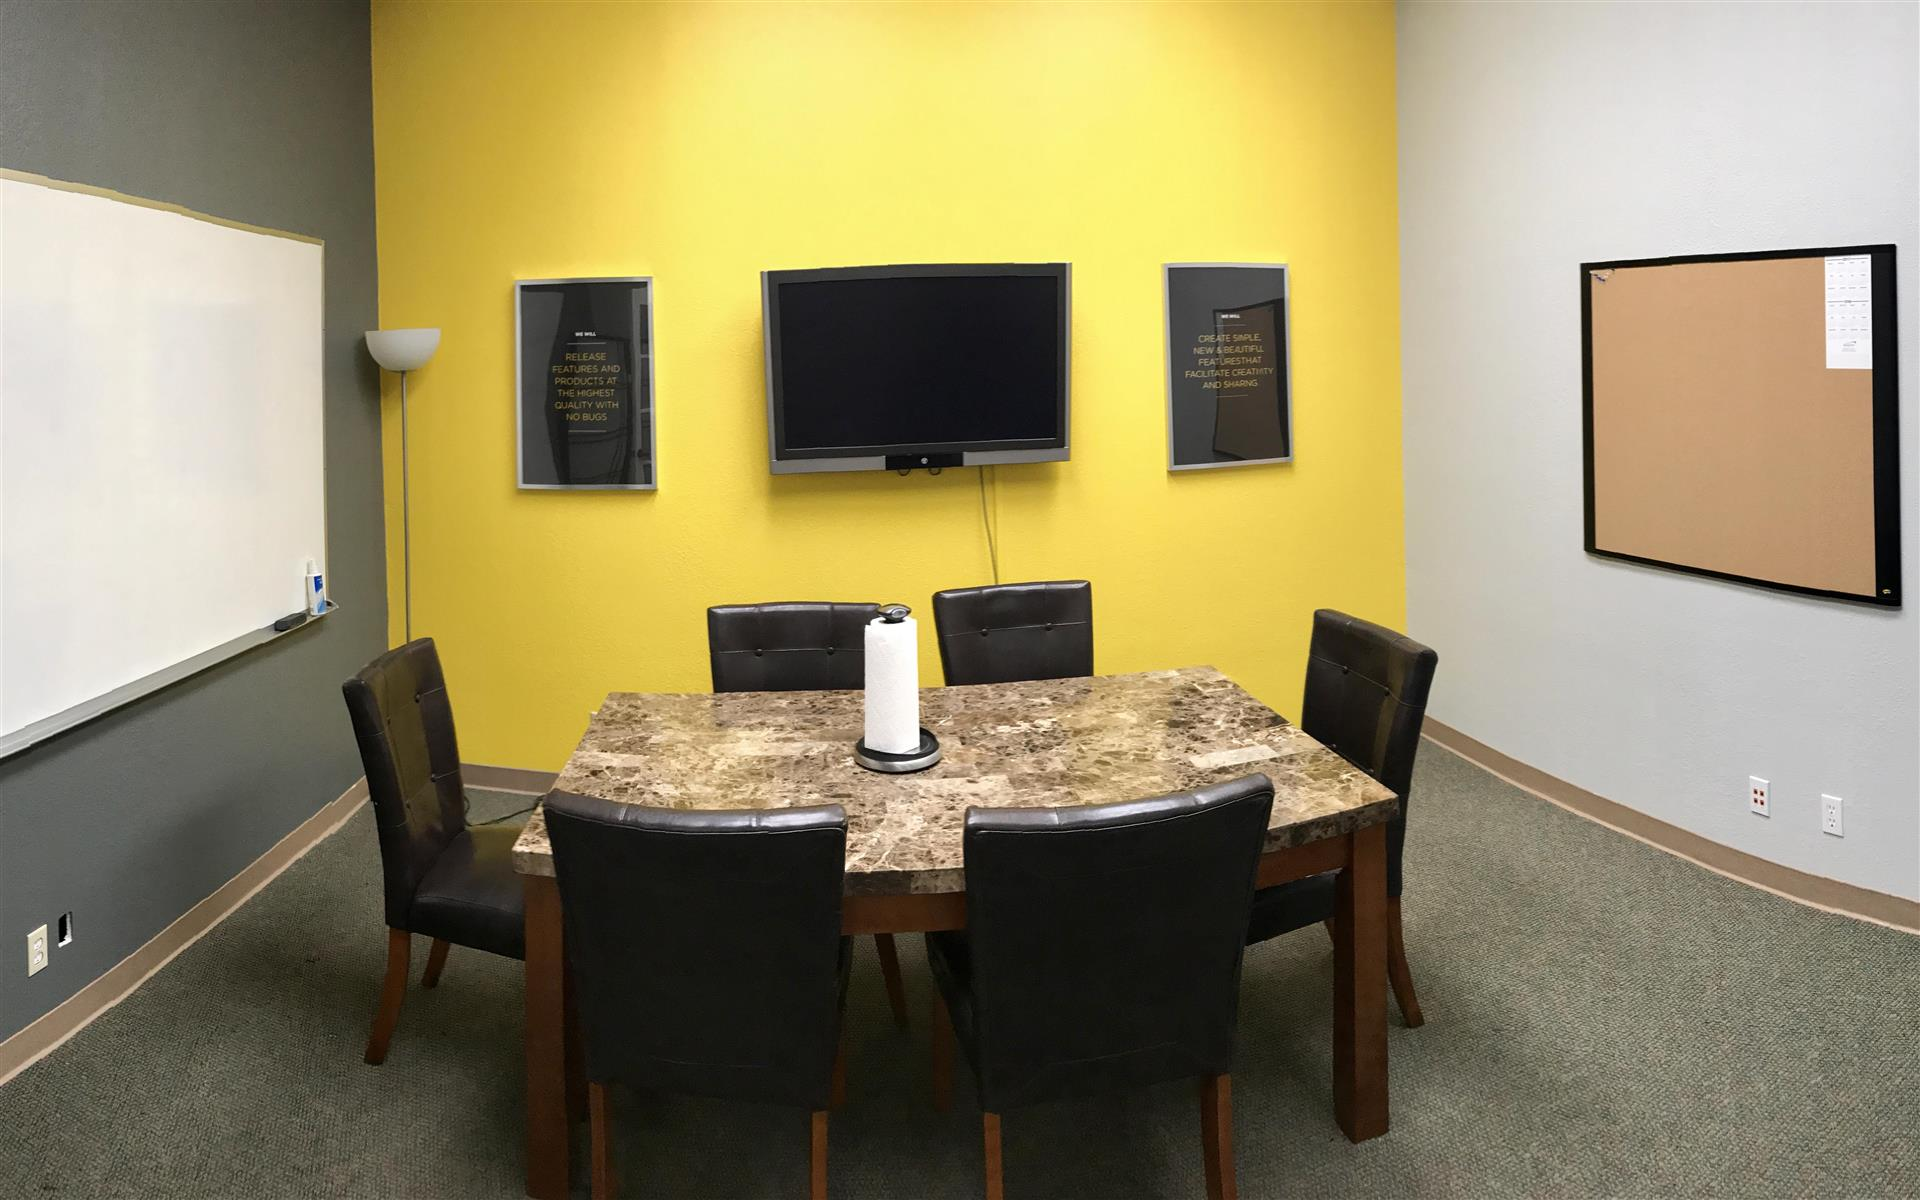 Nventify - Conference room for 6-8 people (Monthly)